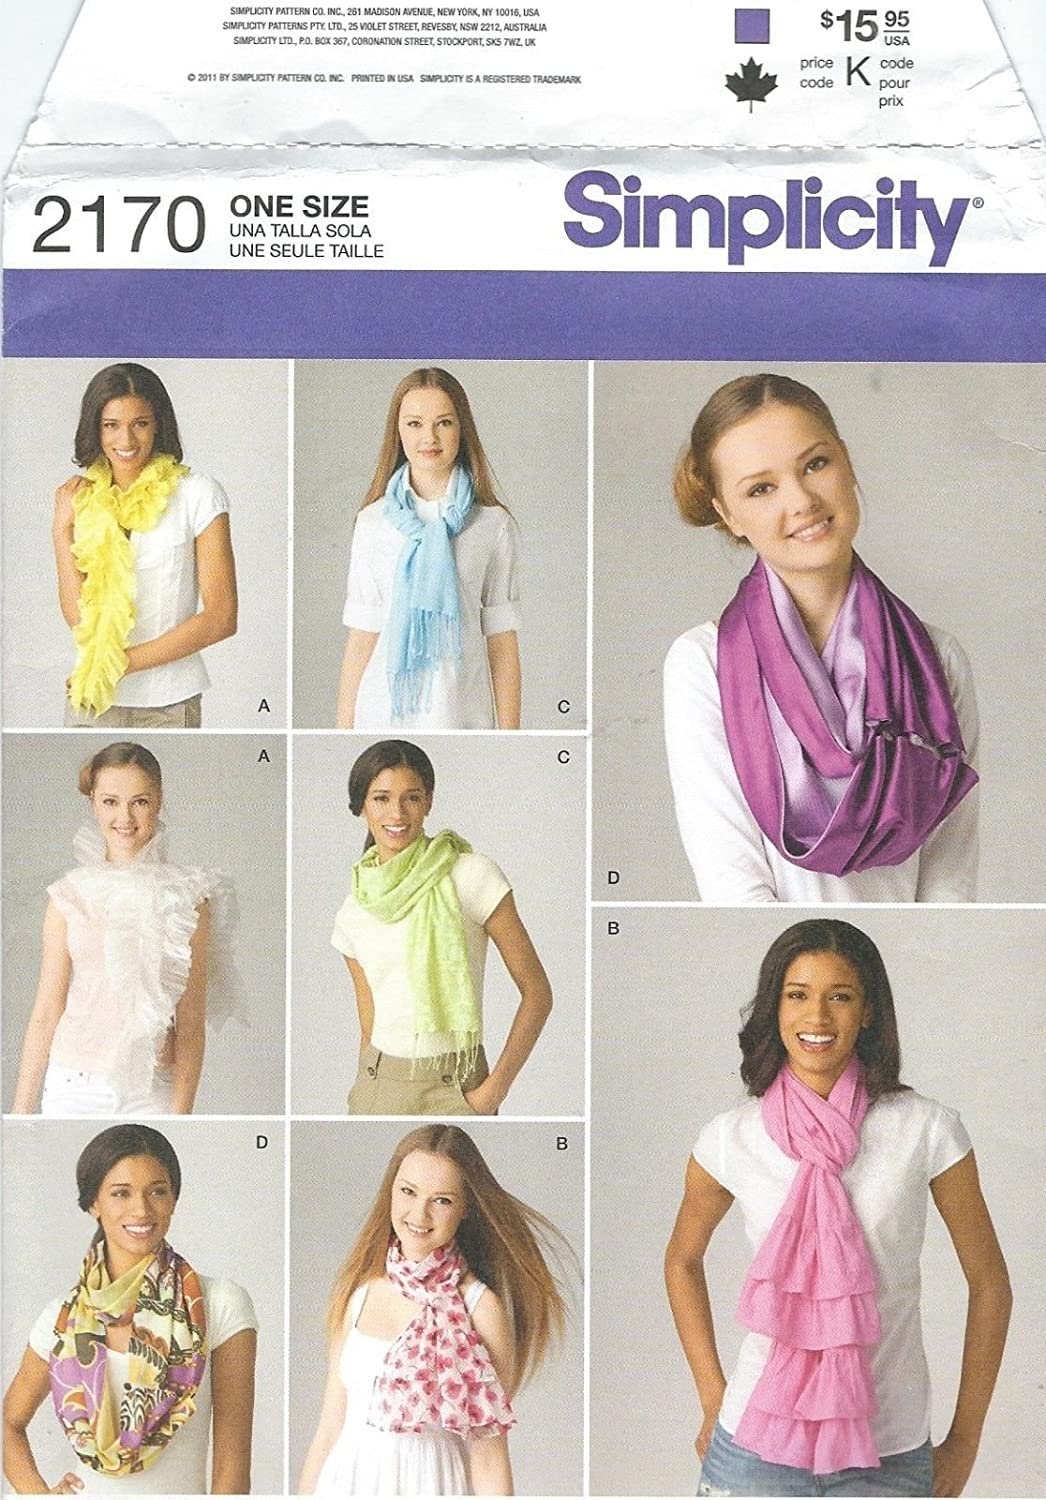 Simplicity 2170 Scarves Sewing Pattern supplier:sailorsparadise